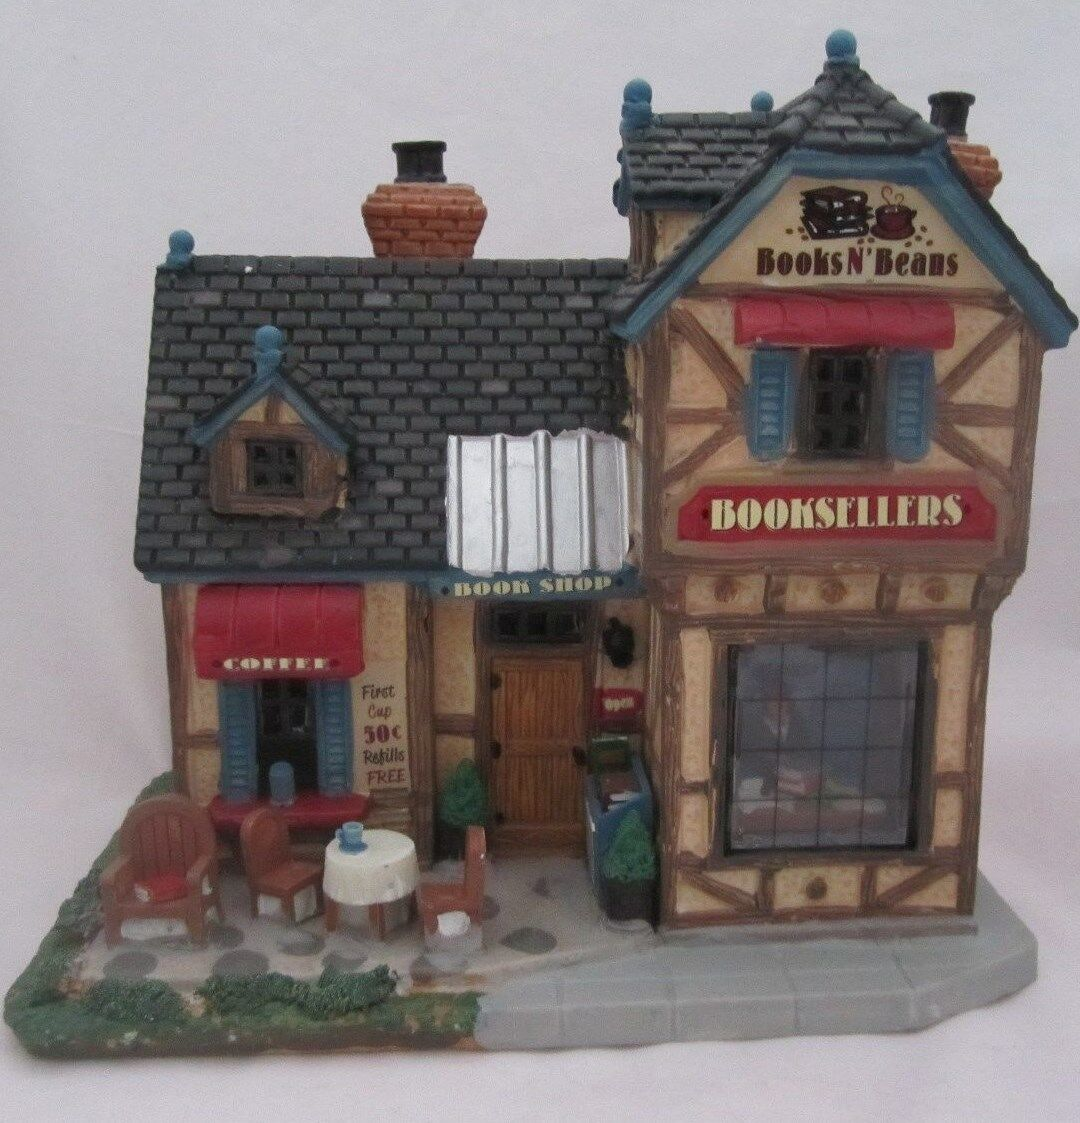 Lemax Books 'n Beans Booksellers Village Building Lighted House NEW Store Exc